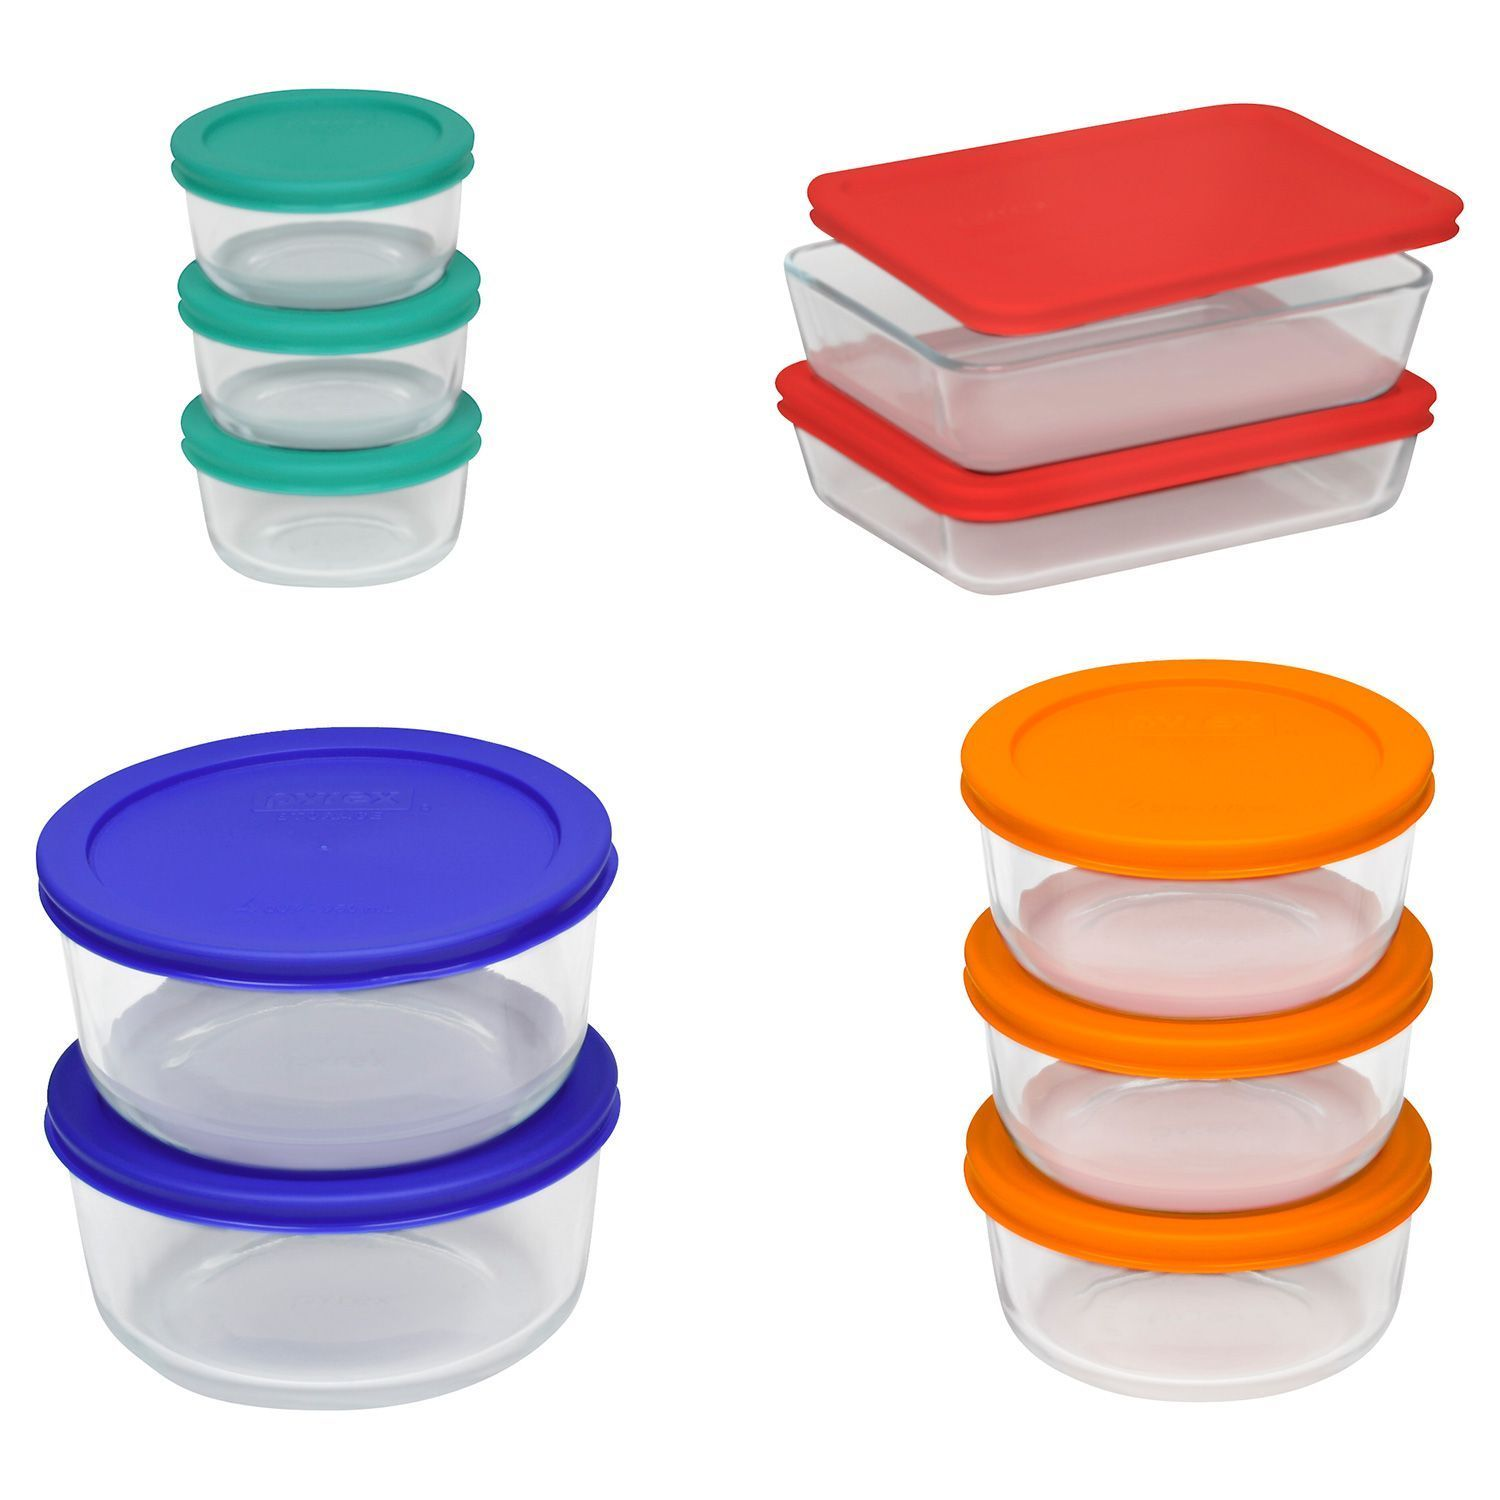 Pyrex 20 pc Glass Food Storage Set Bakeware Bowls with Lids Serving - New! 1